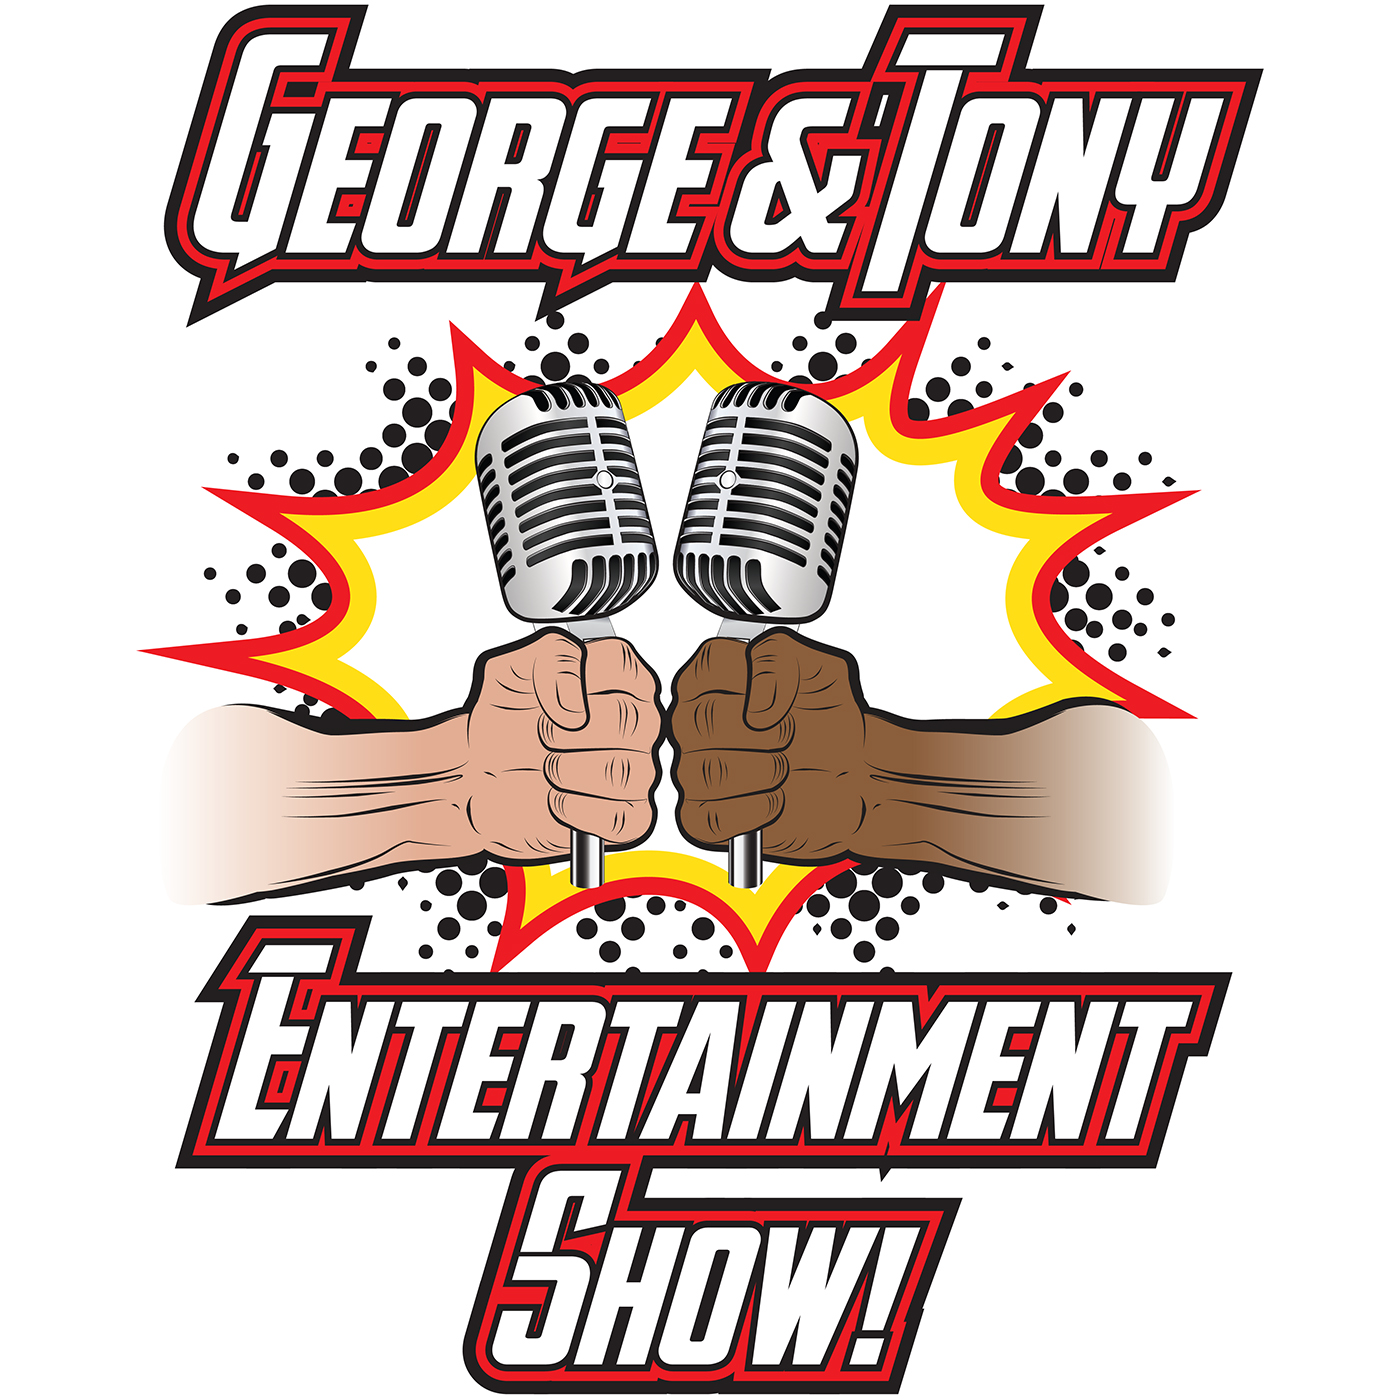 George and Tony Entertainment Show #71